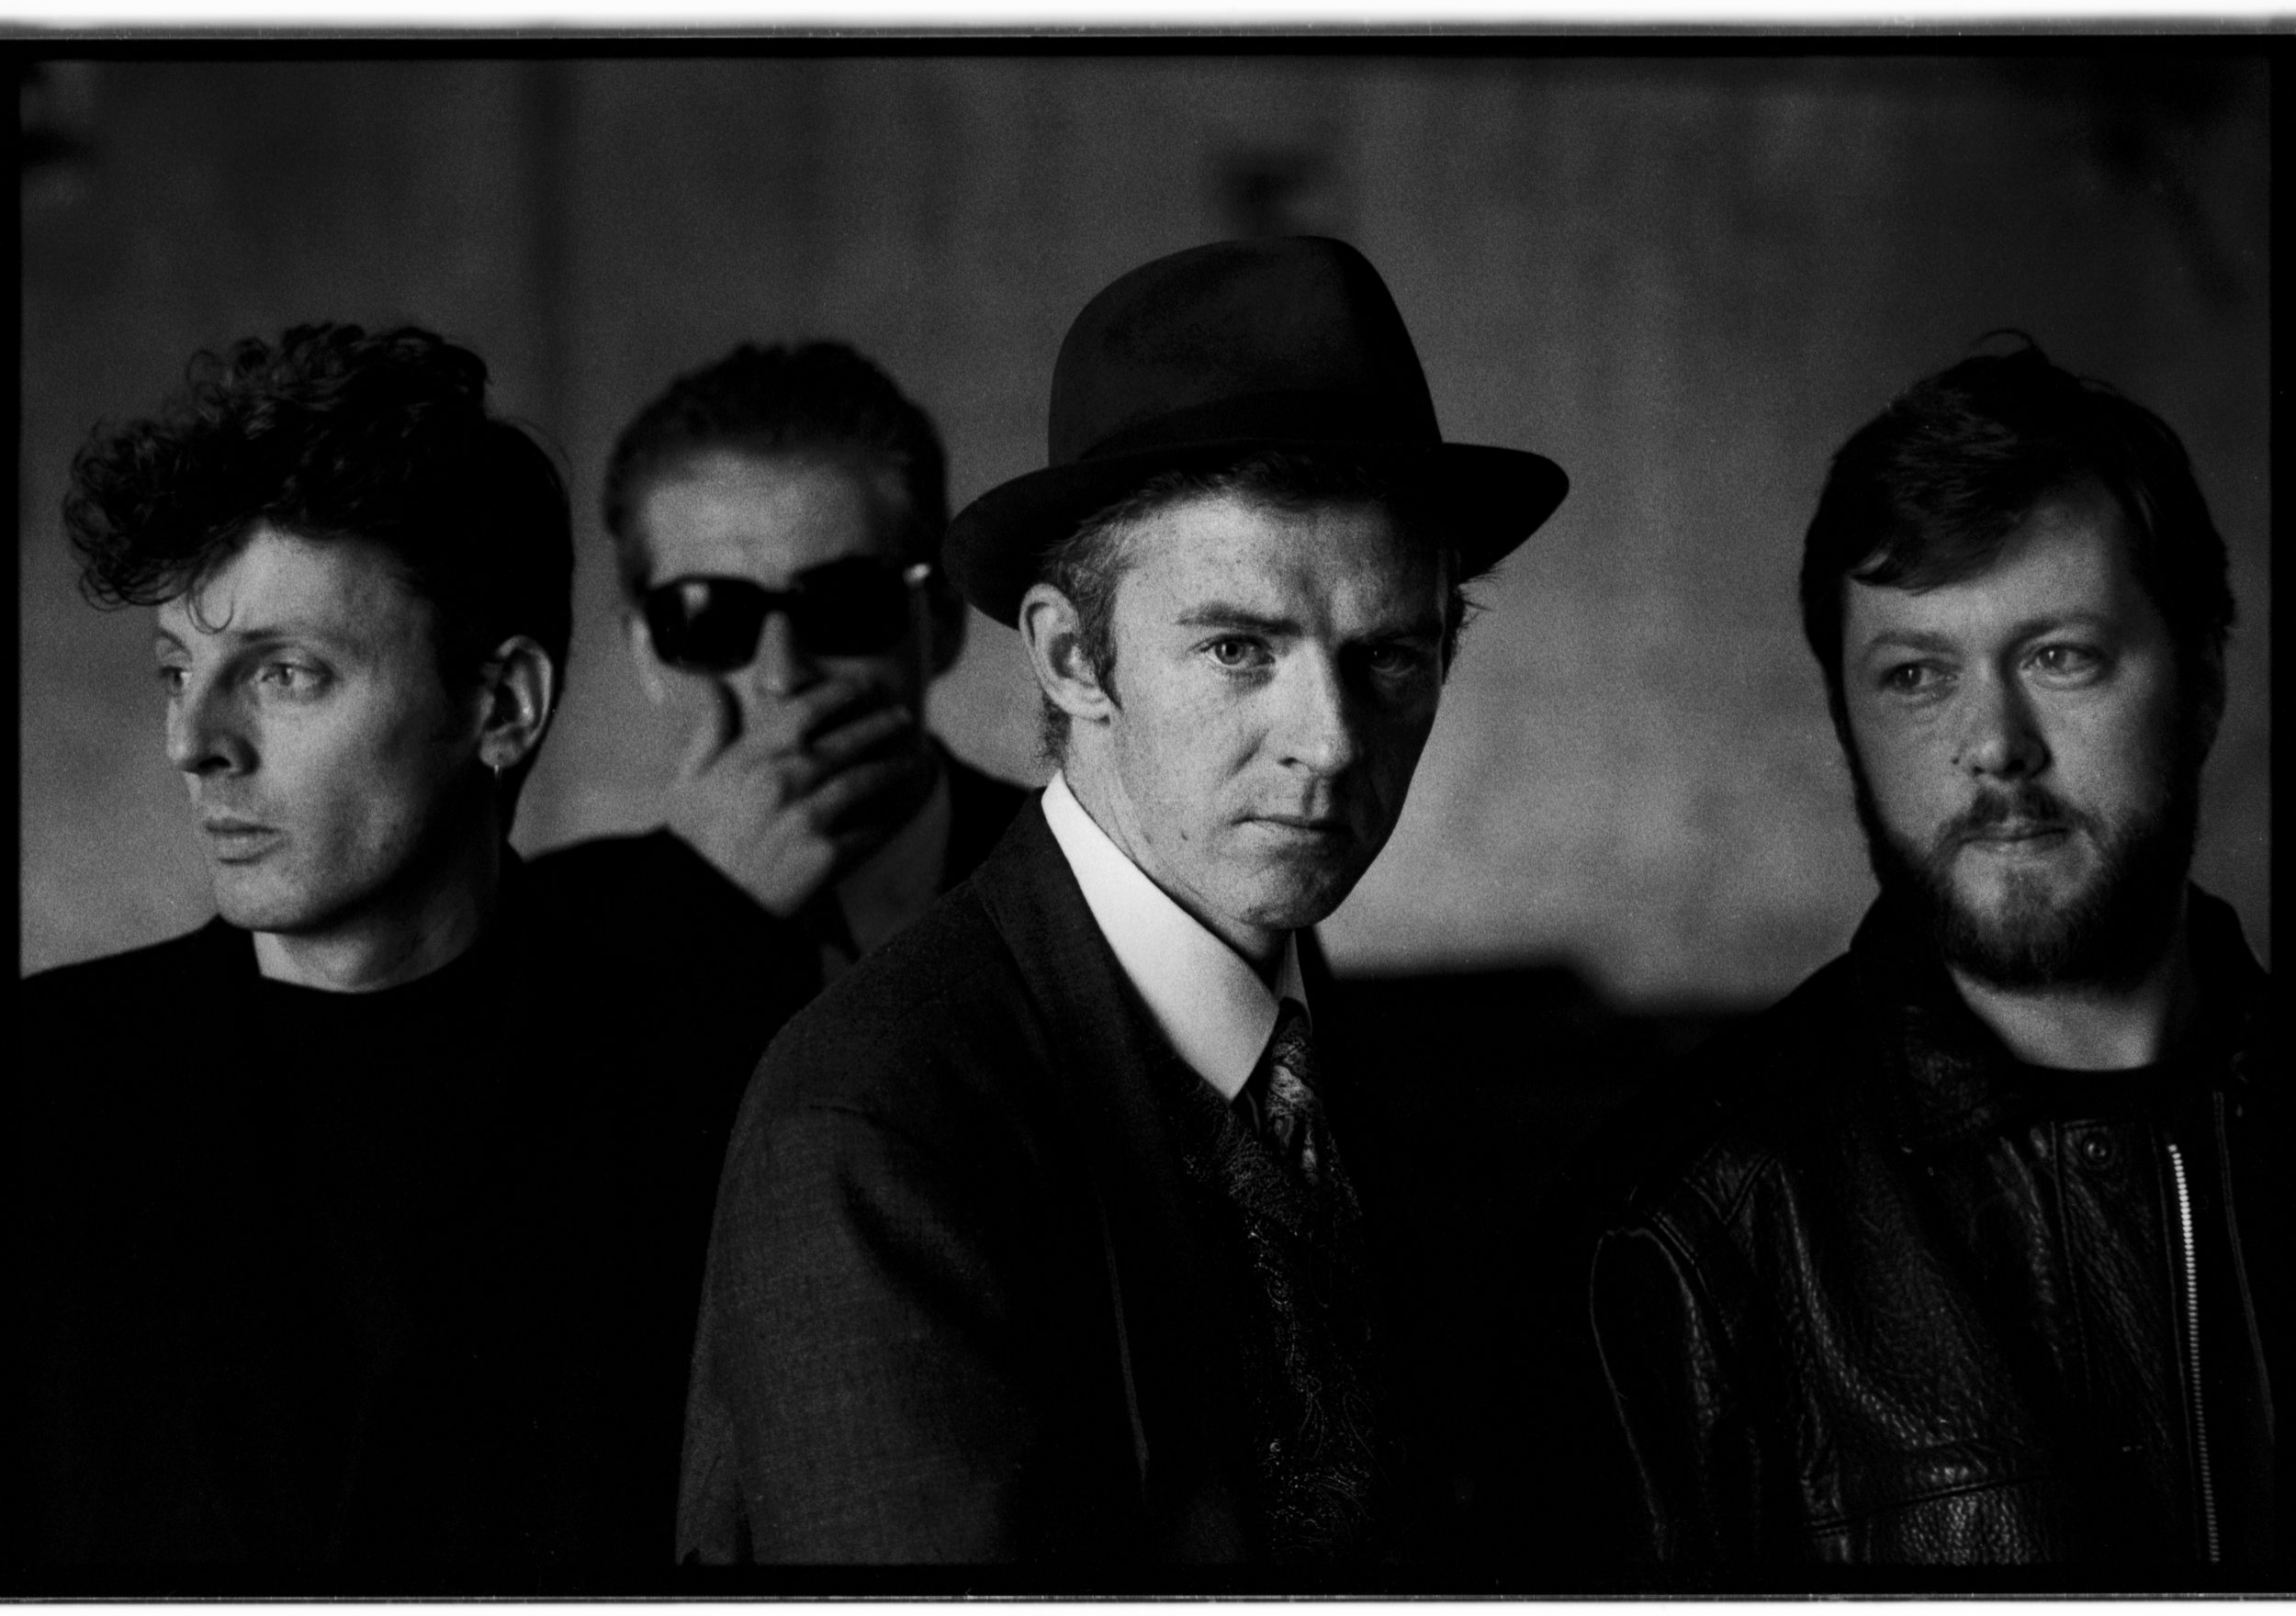 The Radiators photographed in the Dublin docklands in 1989. L-R Pete Holidai, Mark Megaray, Philip Chevron and Jimmy Crashe.